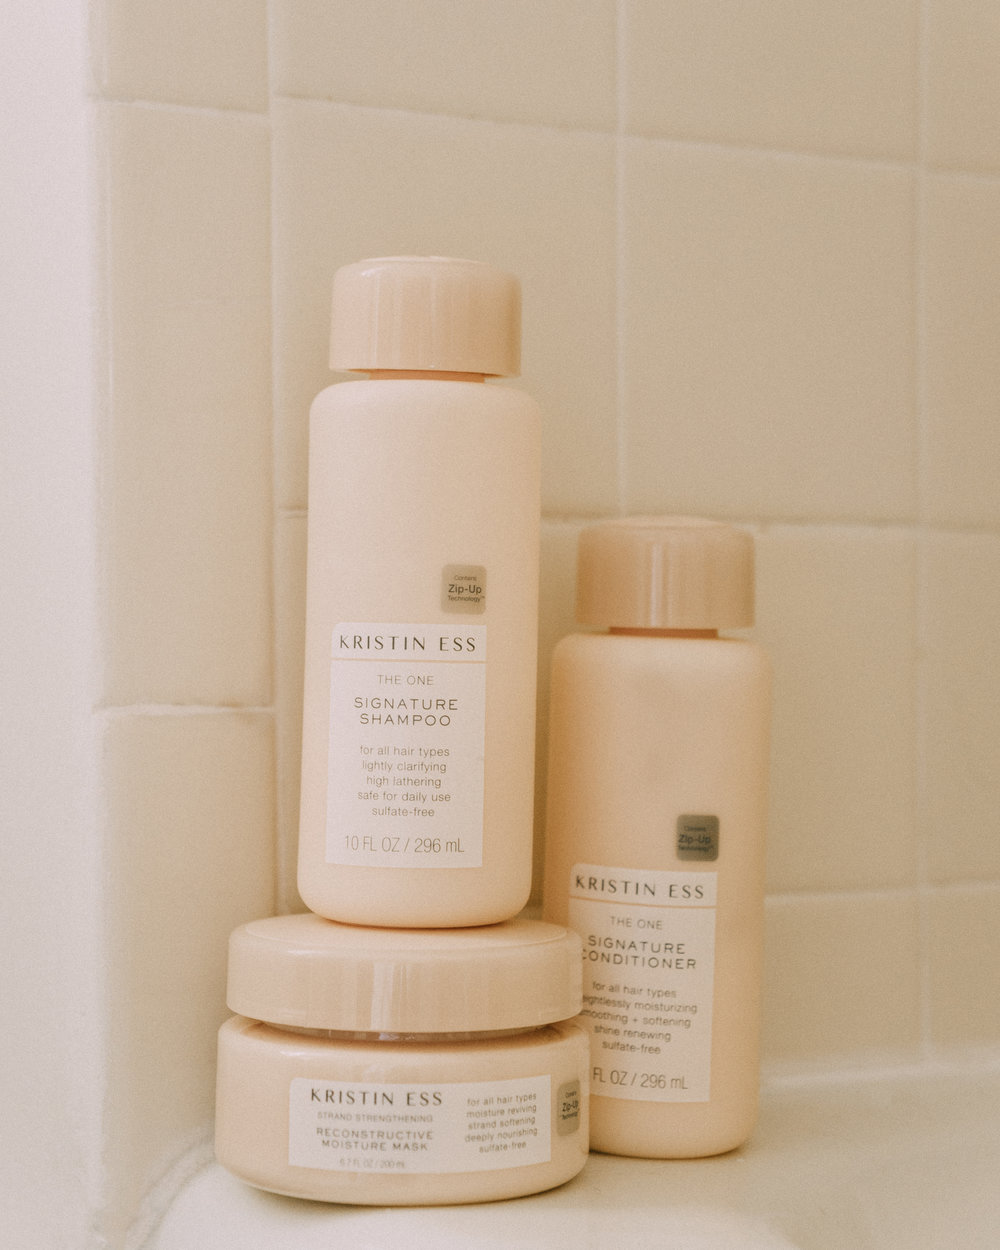 Kristin Ess Signature    Shampoo    &    Conditioner   ,    Moisture Mask